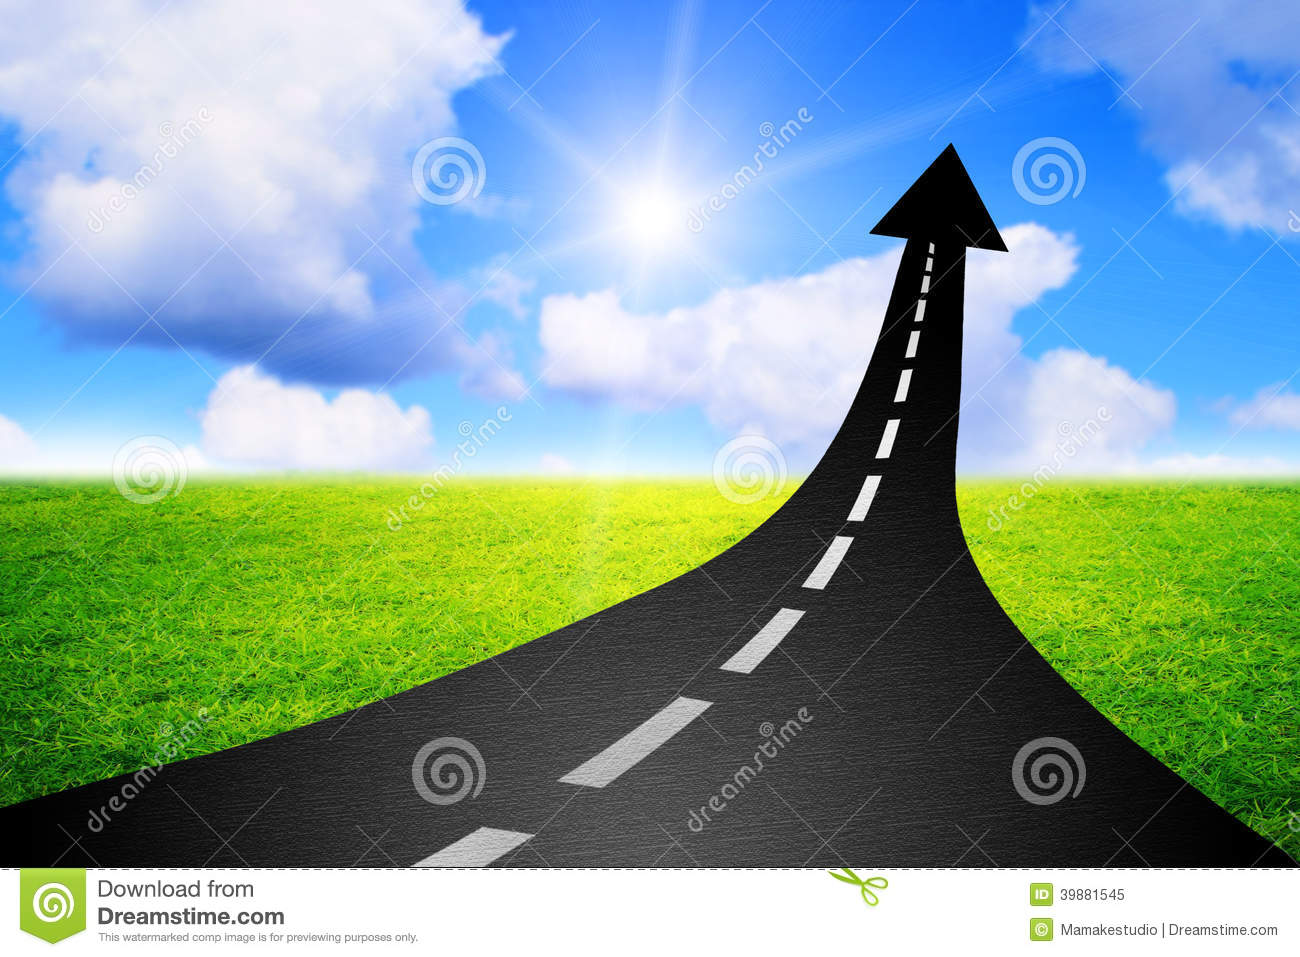 Highway 9 Auto Sales >> Road To Success Highway Road Going Up As An Arrow Stock Illustration - Illustration of business ...